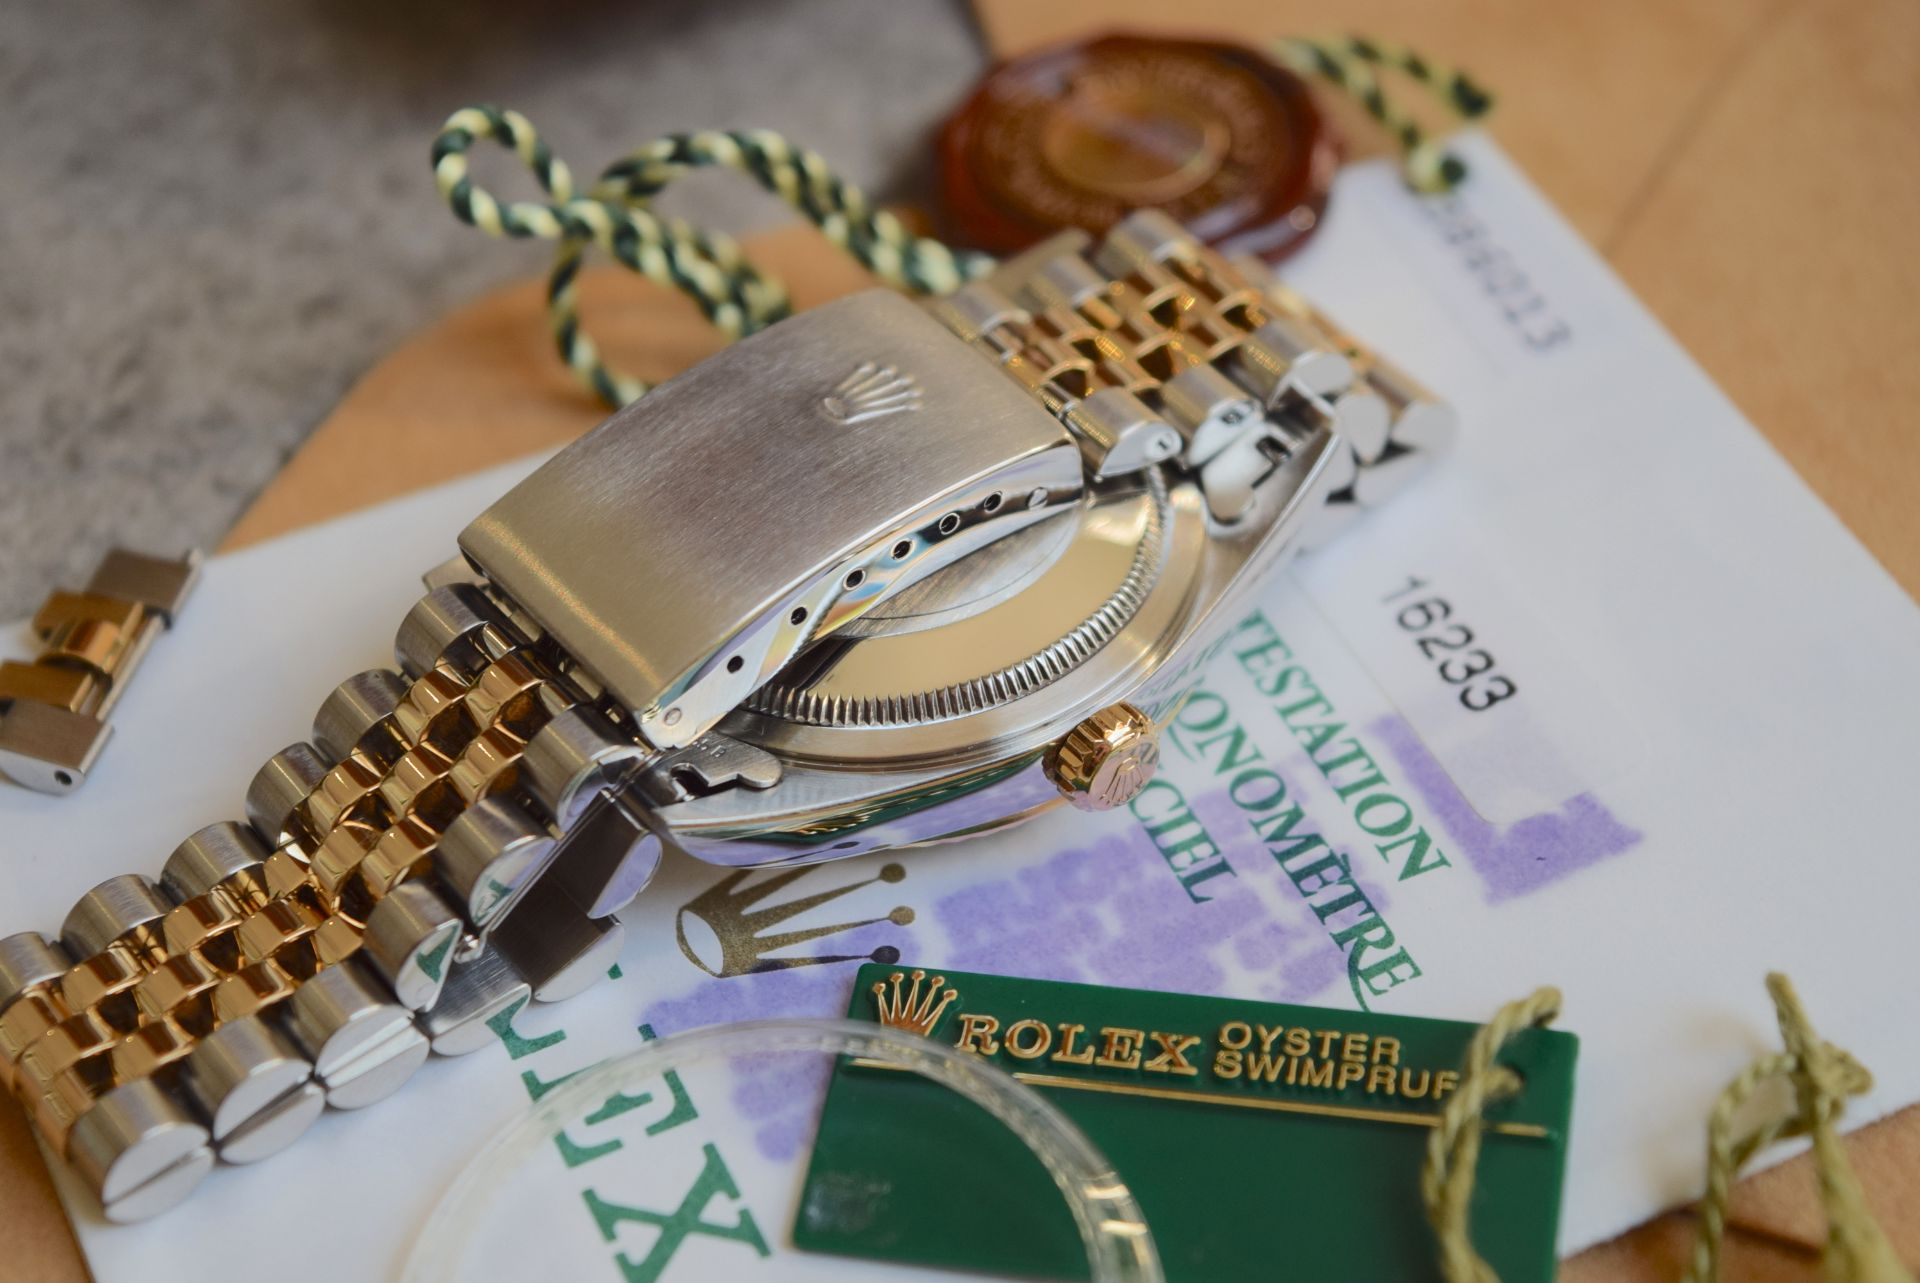 18CT GOLD/ STEEL ROLEX DATEJUST - 36MM, MENS (COMPLETE SET INC BOX, PAPERS, TAGS ETC) - Image 12 of 25